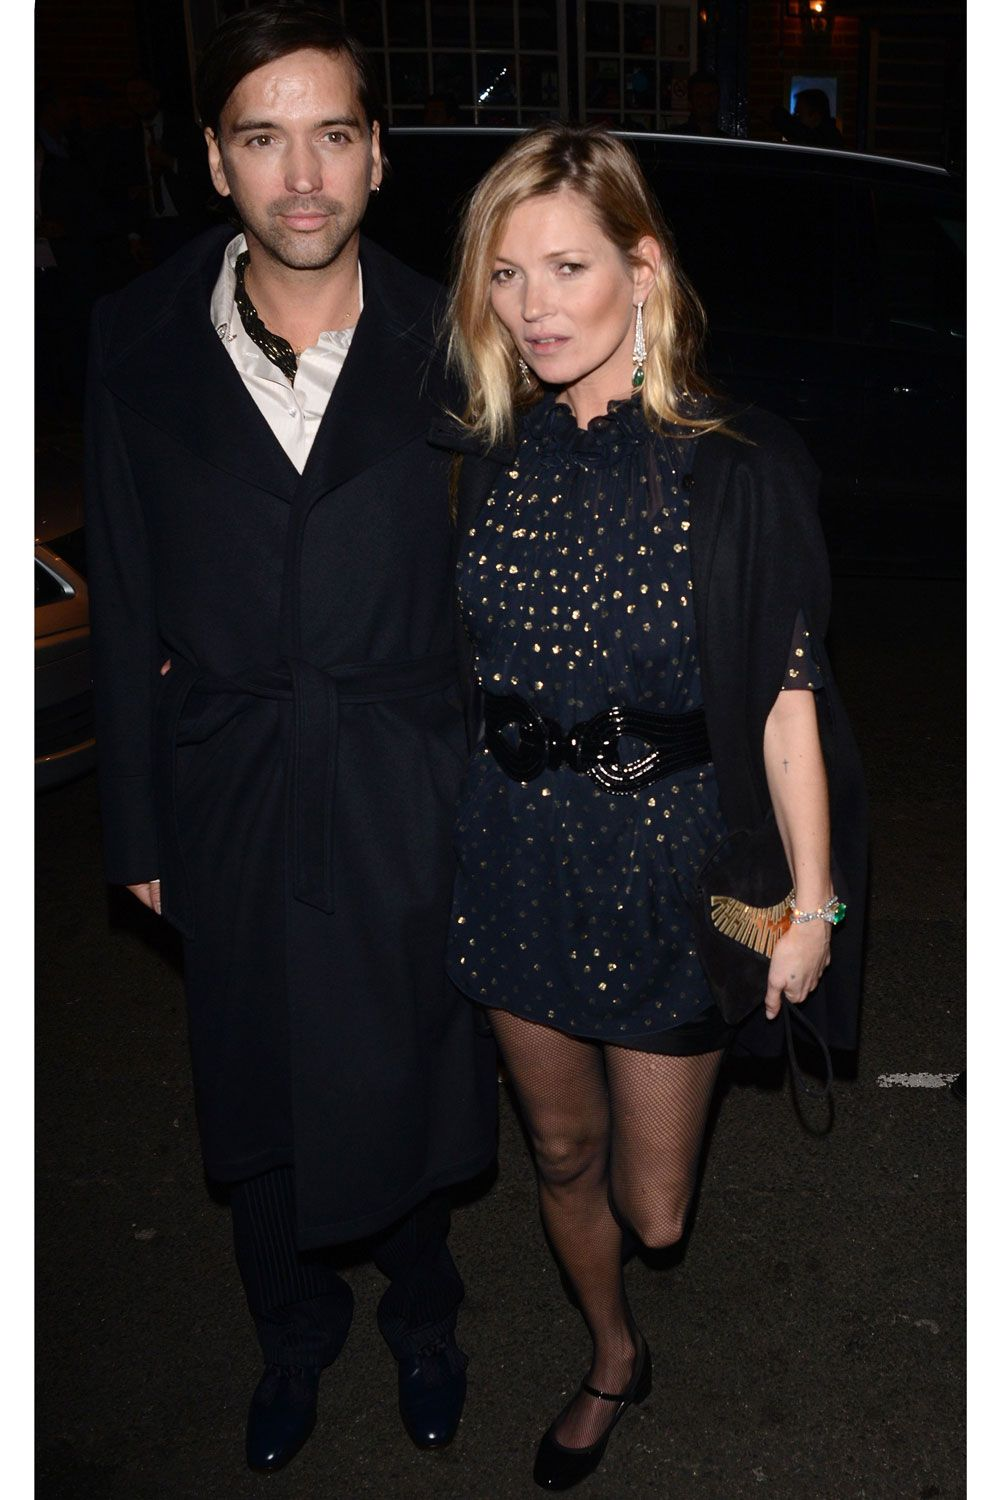 Eveningwear style inspiration from Kate Moss, Alexa Chung and Victoria Beckham...